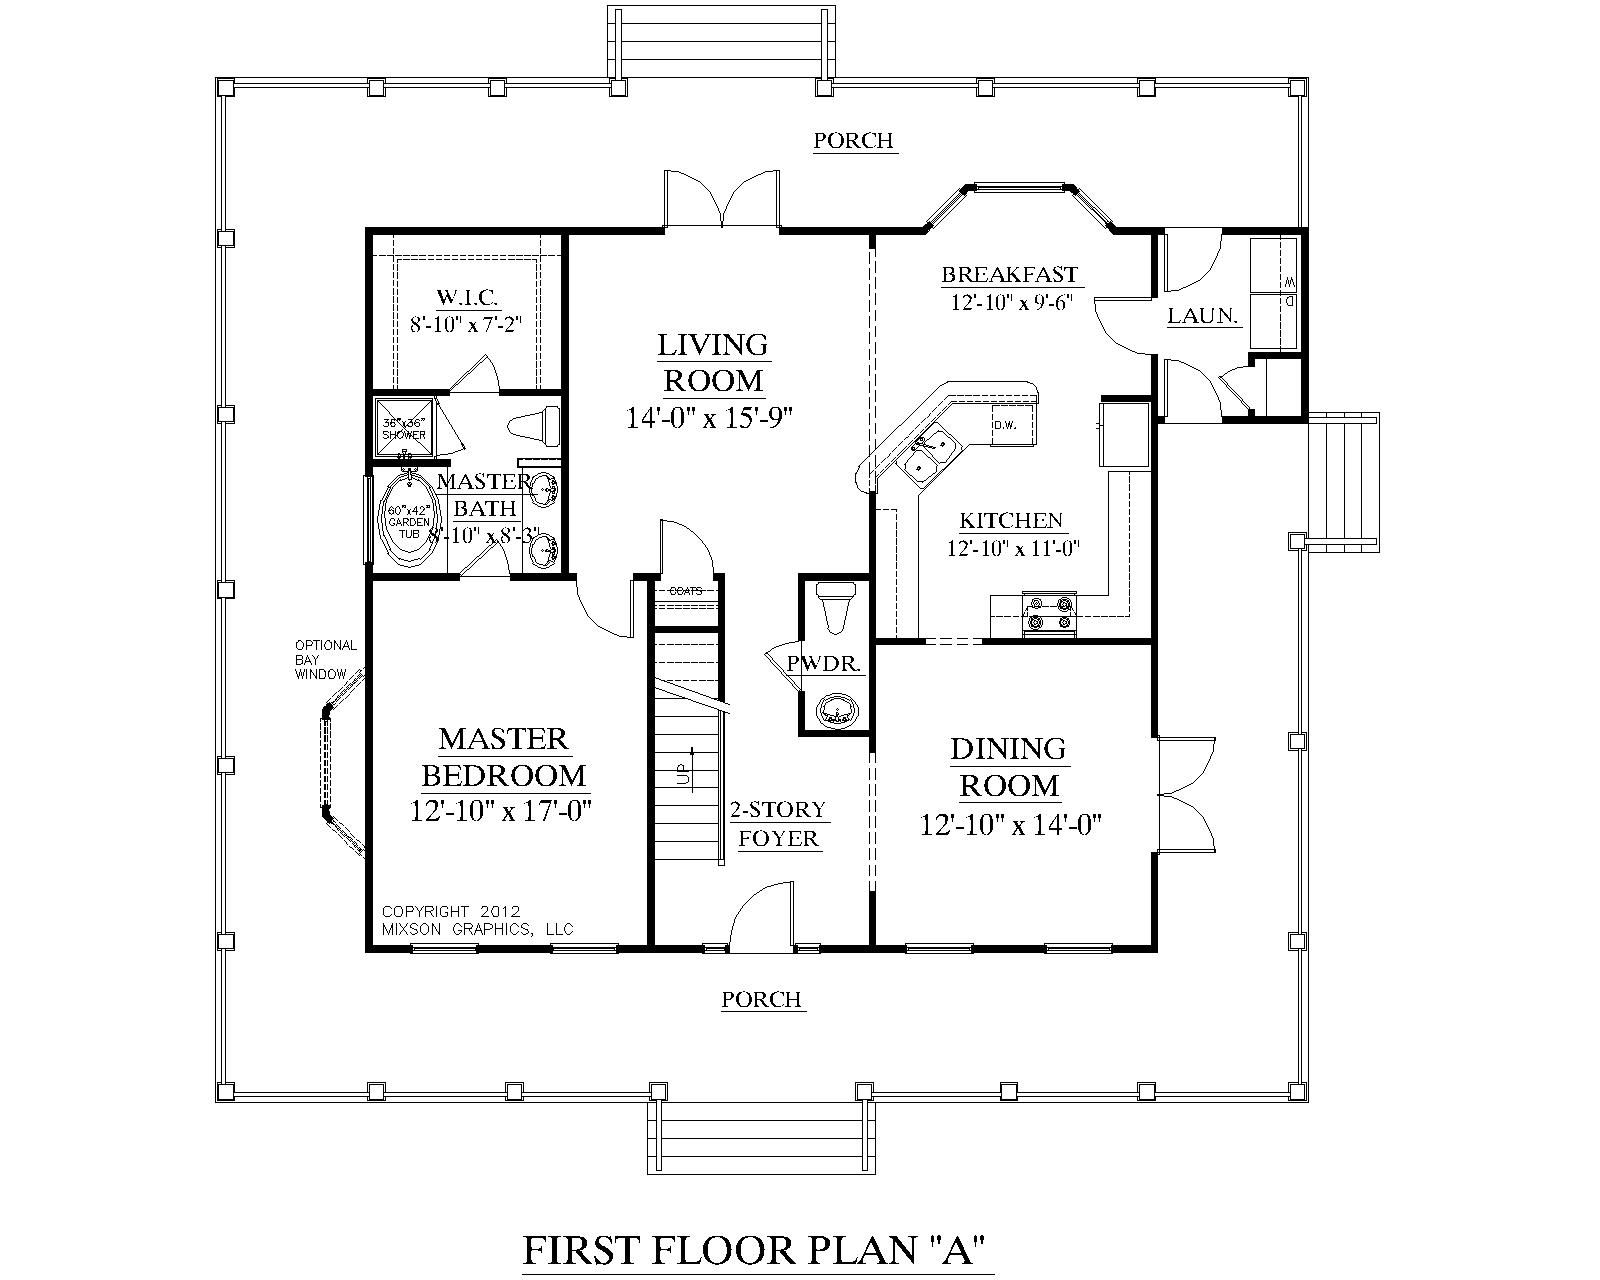 Small 3 Bedroom House Plans modern simple house plan with 3 bedrooms in bedroom floor plans traditional and simple small house Small One Bedroom House Plans Traditional 1 12 Story House Plan